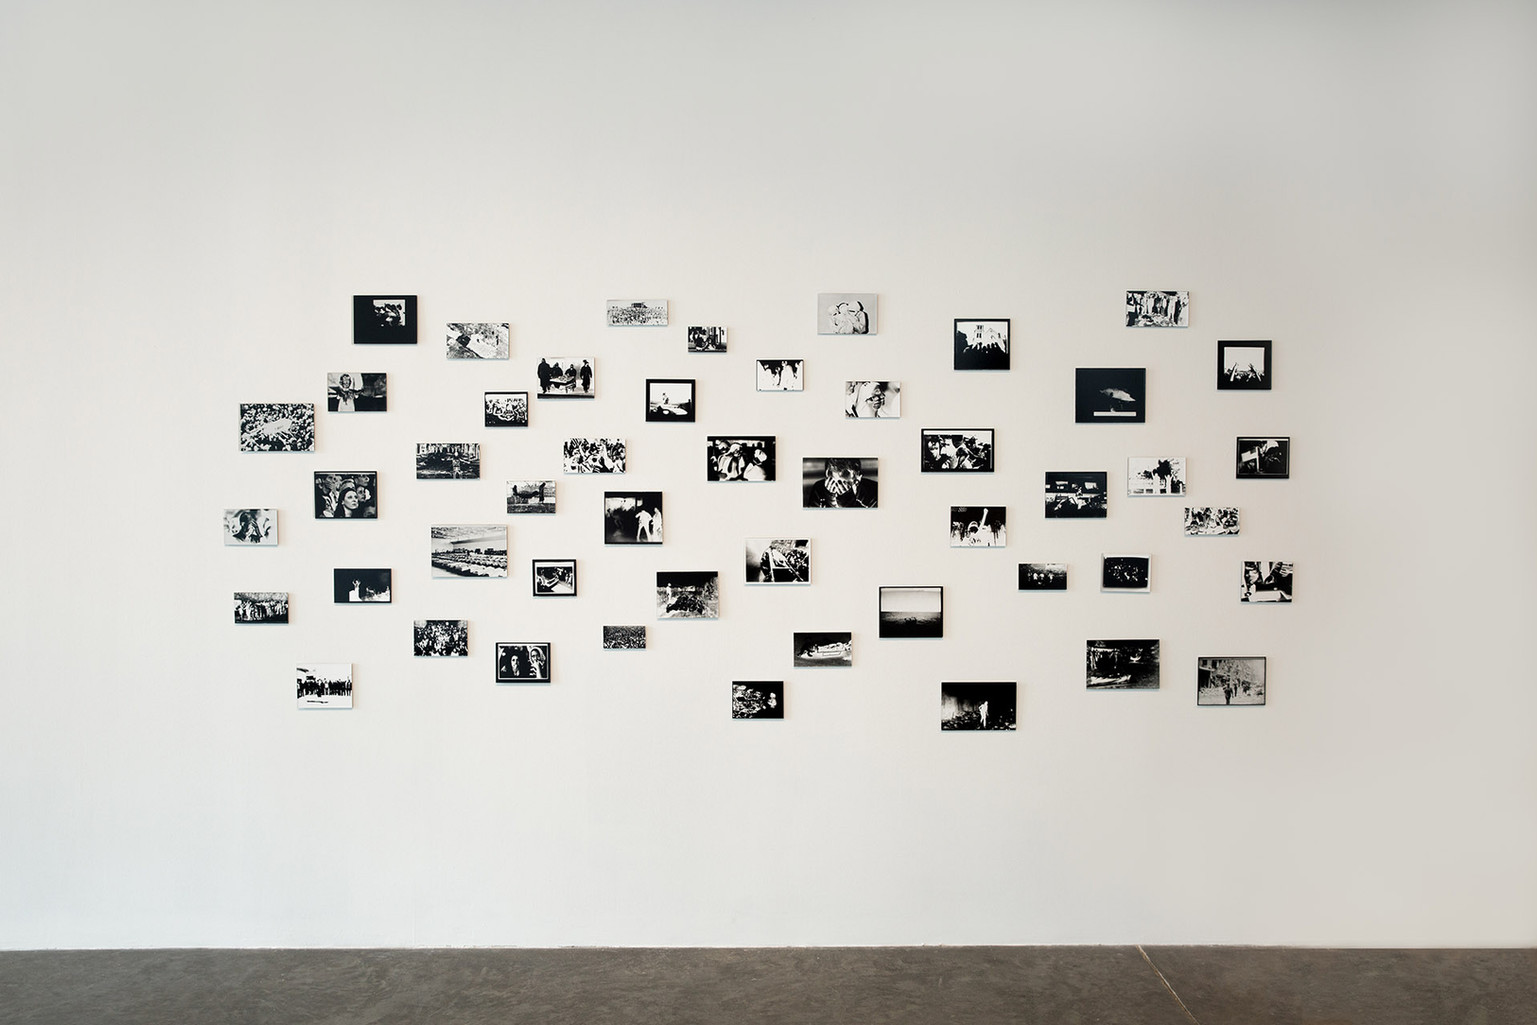 """Kristine Thompson, """"Images Seen to Images Felt,"""" 2019. Installation: gelatin silver print photograms exposed by the light of a laptop screen, each print mounted to dibond 84 x 84 in. Photo by Mariana Sheppard"""